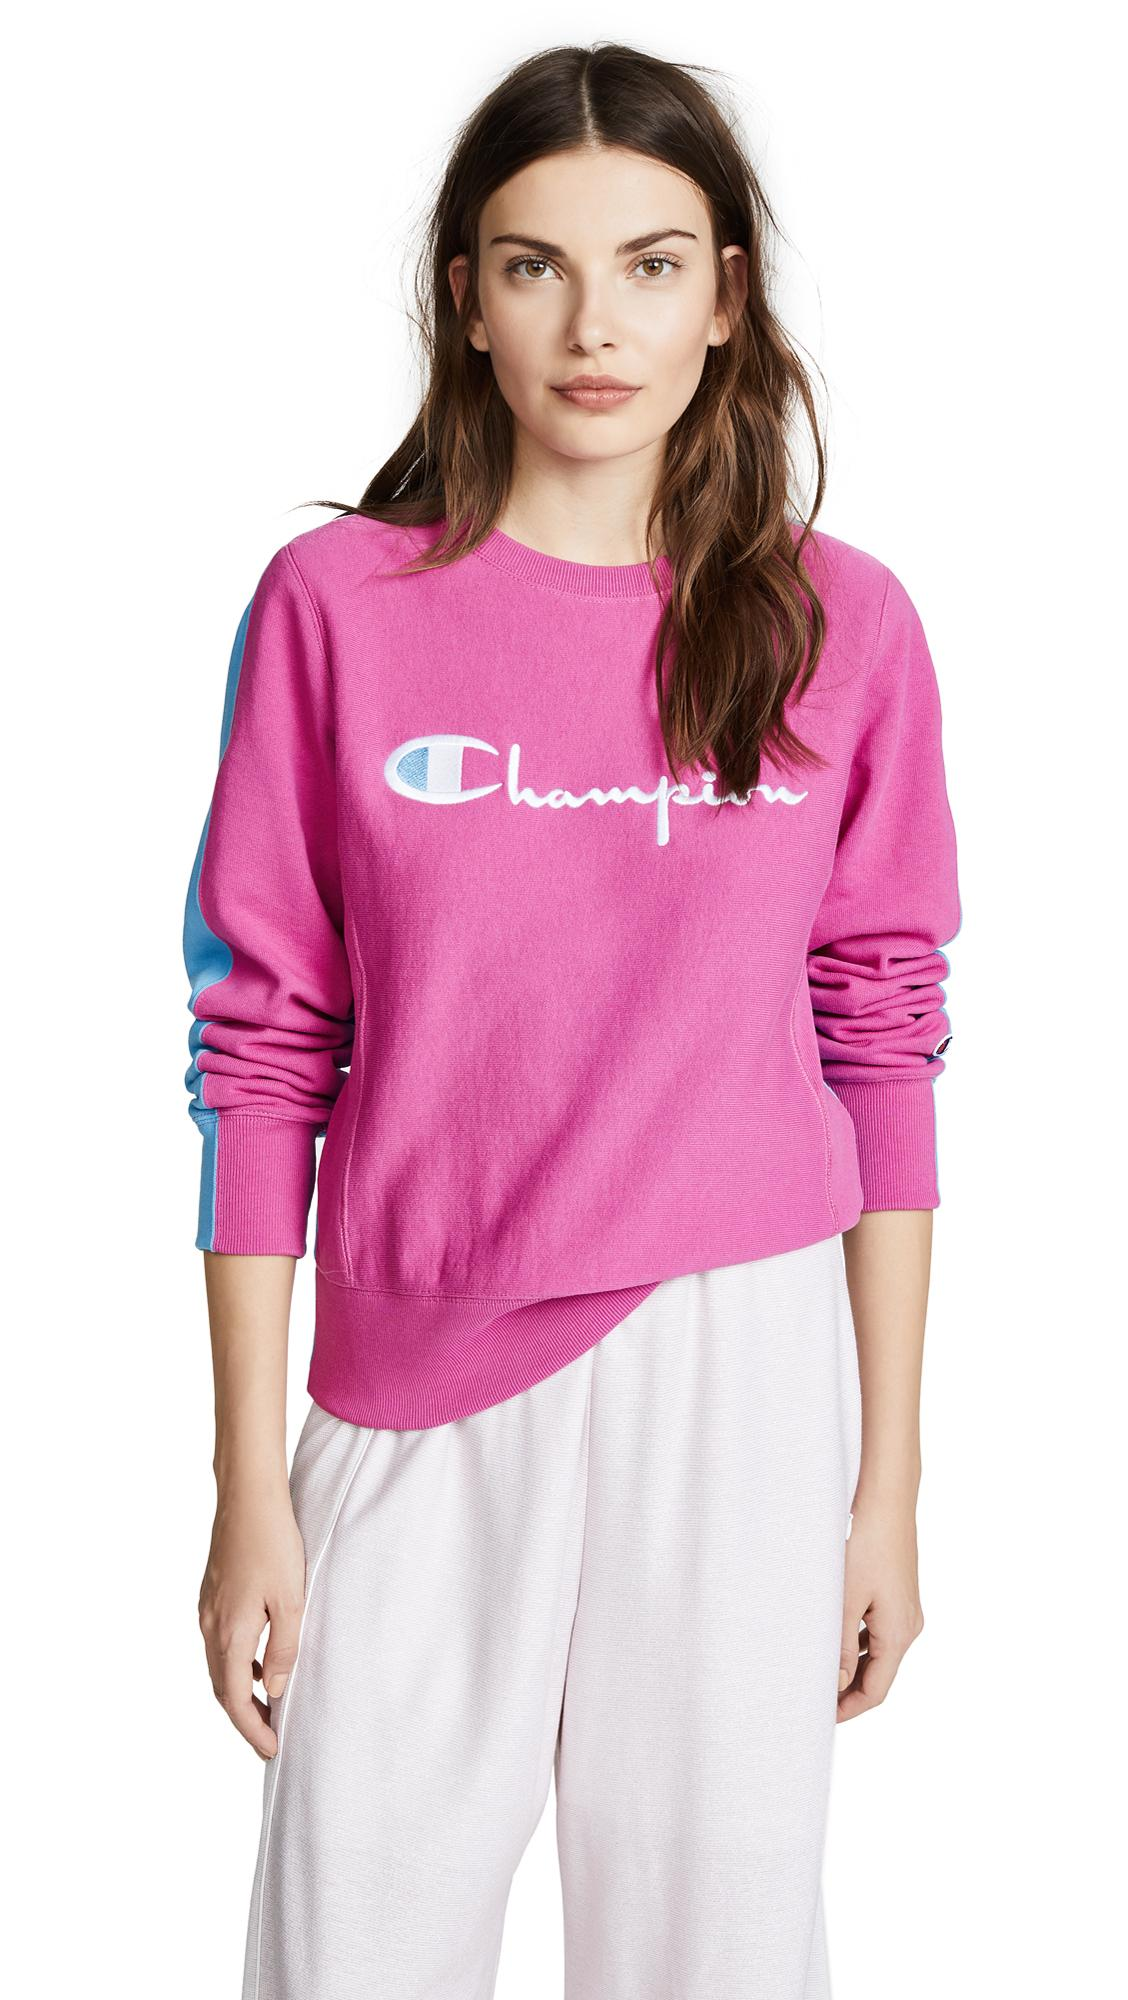 Champion Embroidered Logo Two-tone Sweatshirt In Pink/blue